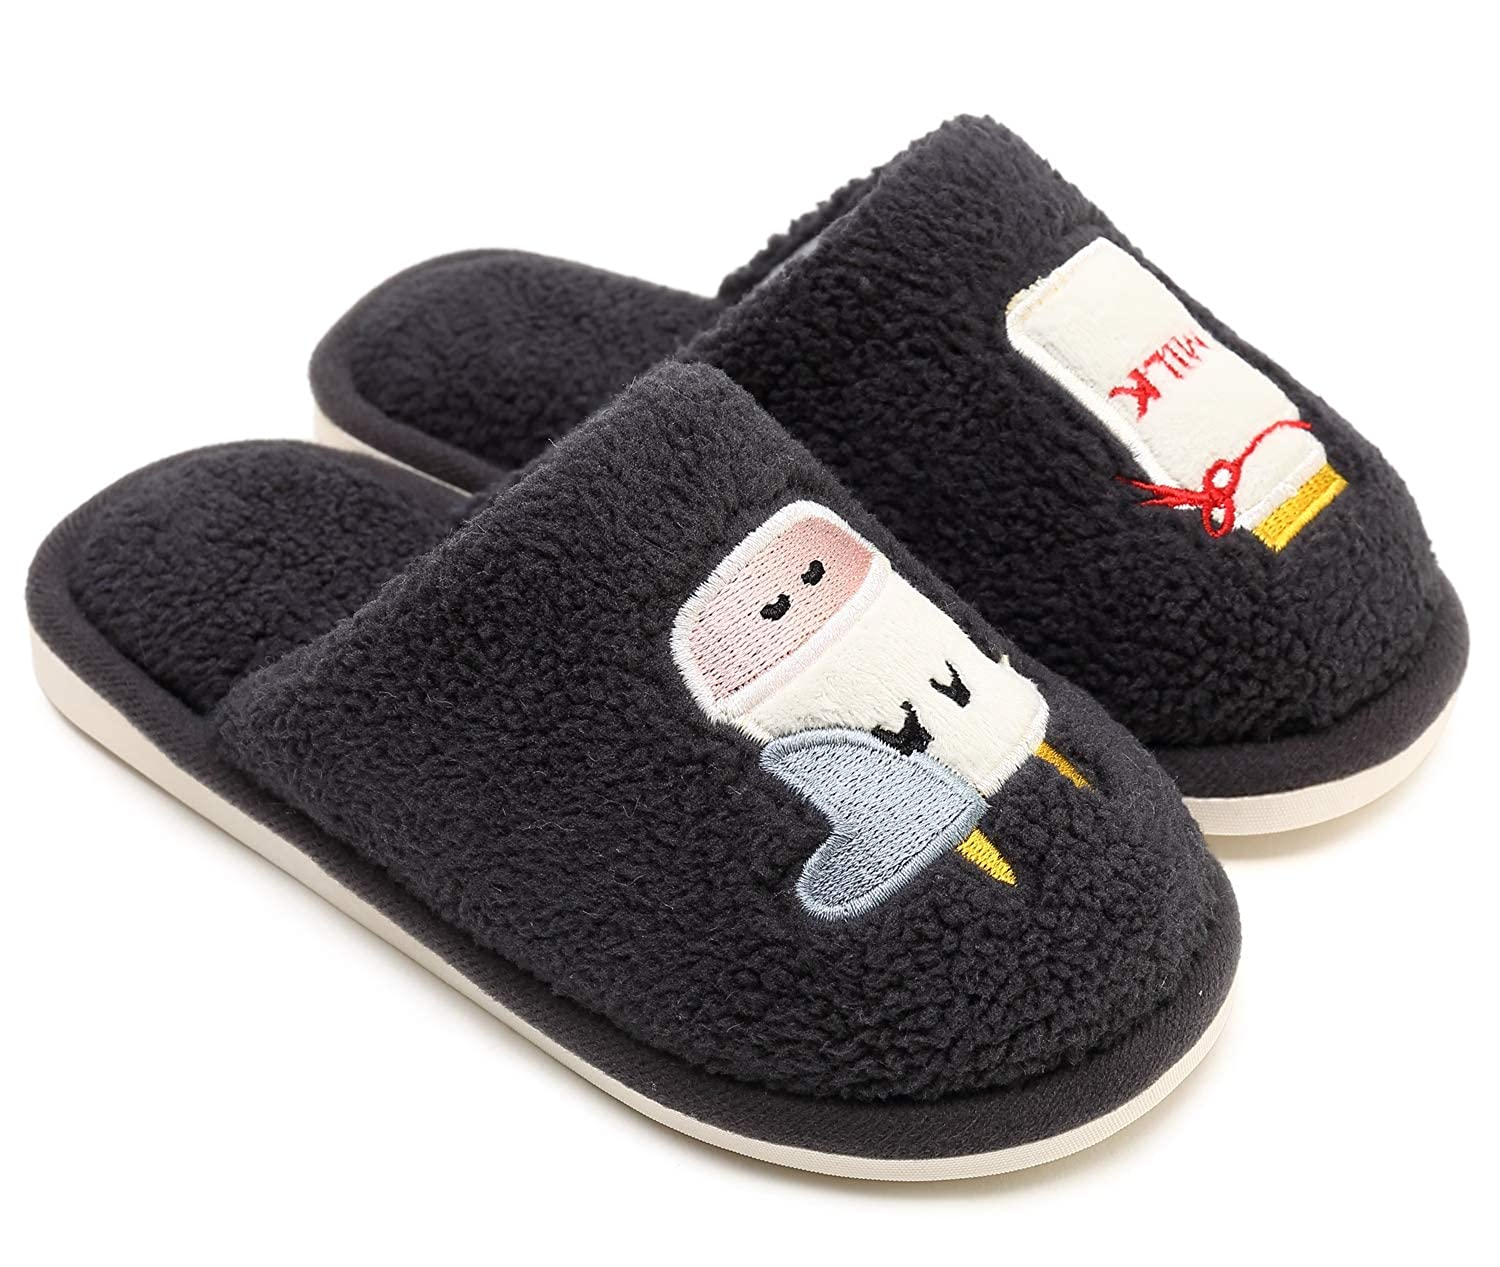 Slippers- bunnies - always a pleasant gift